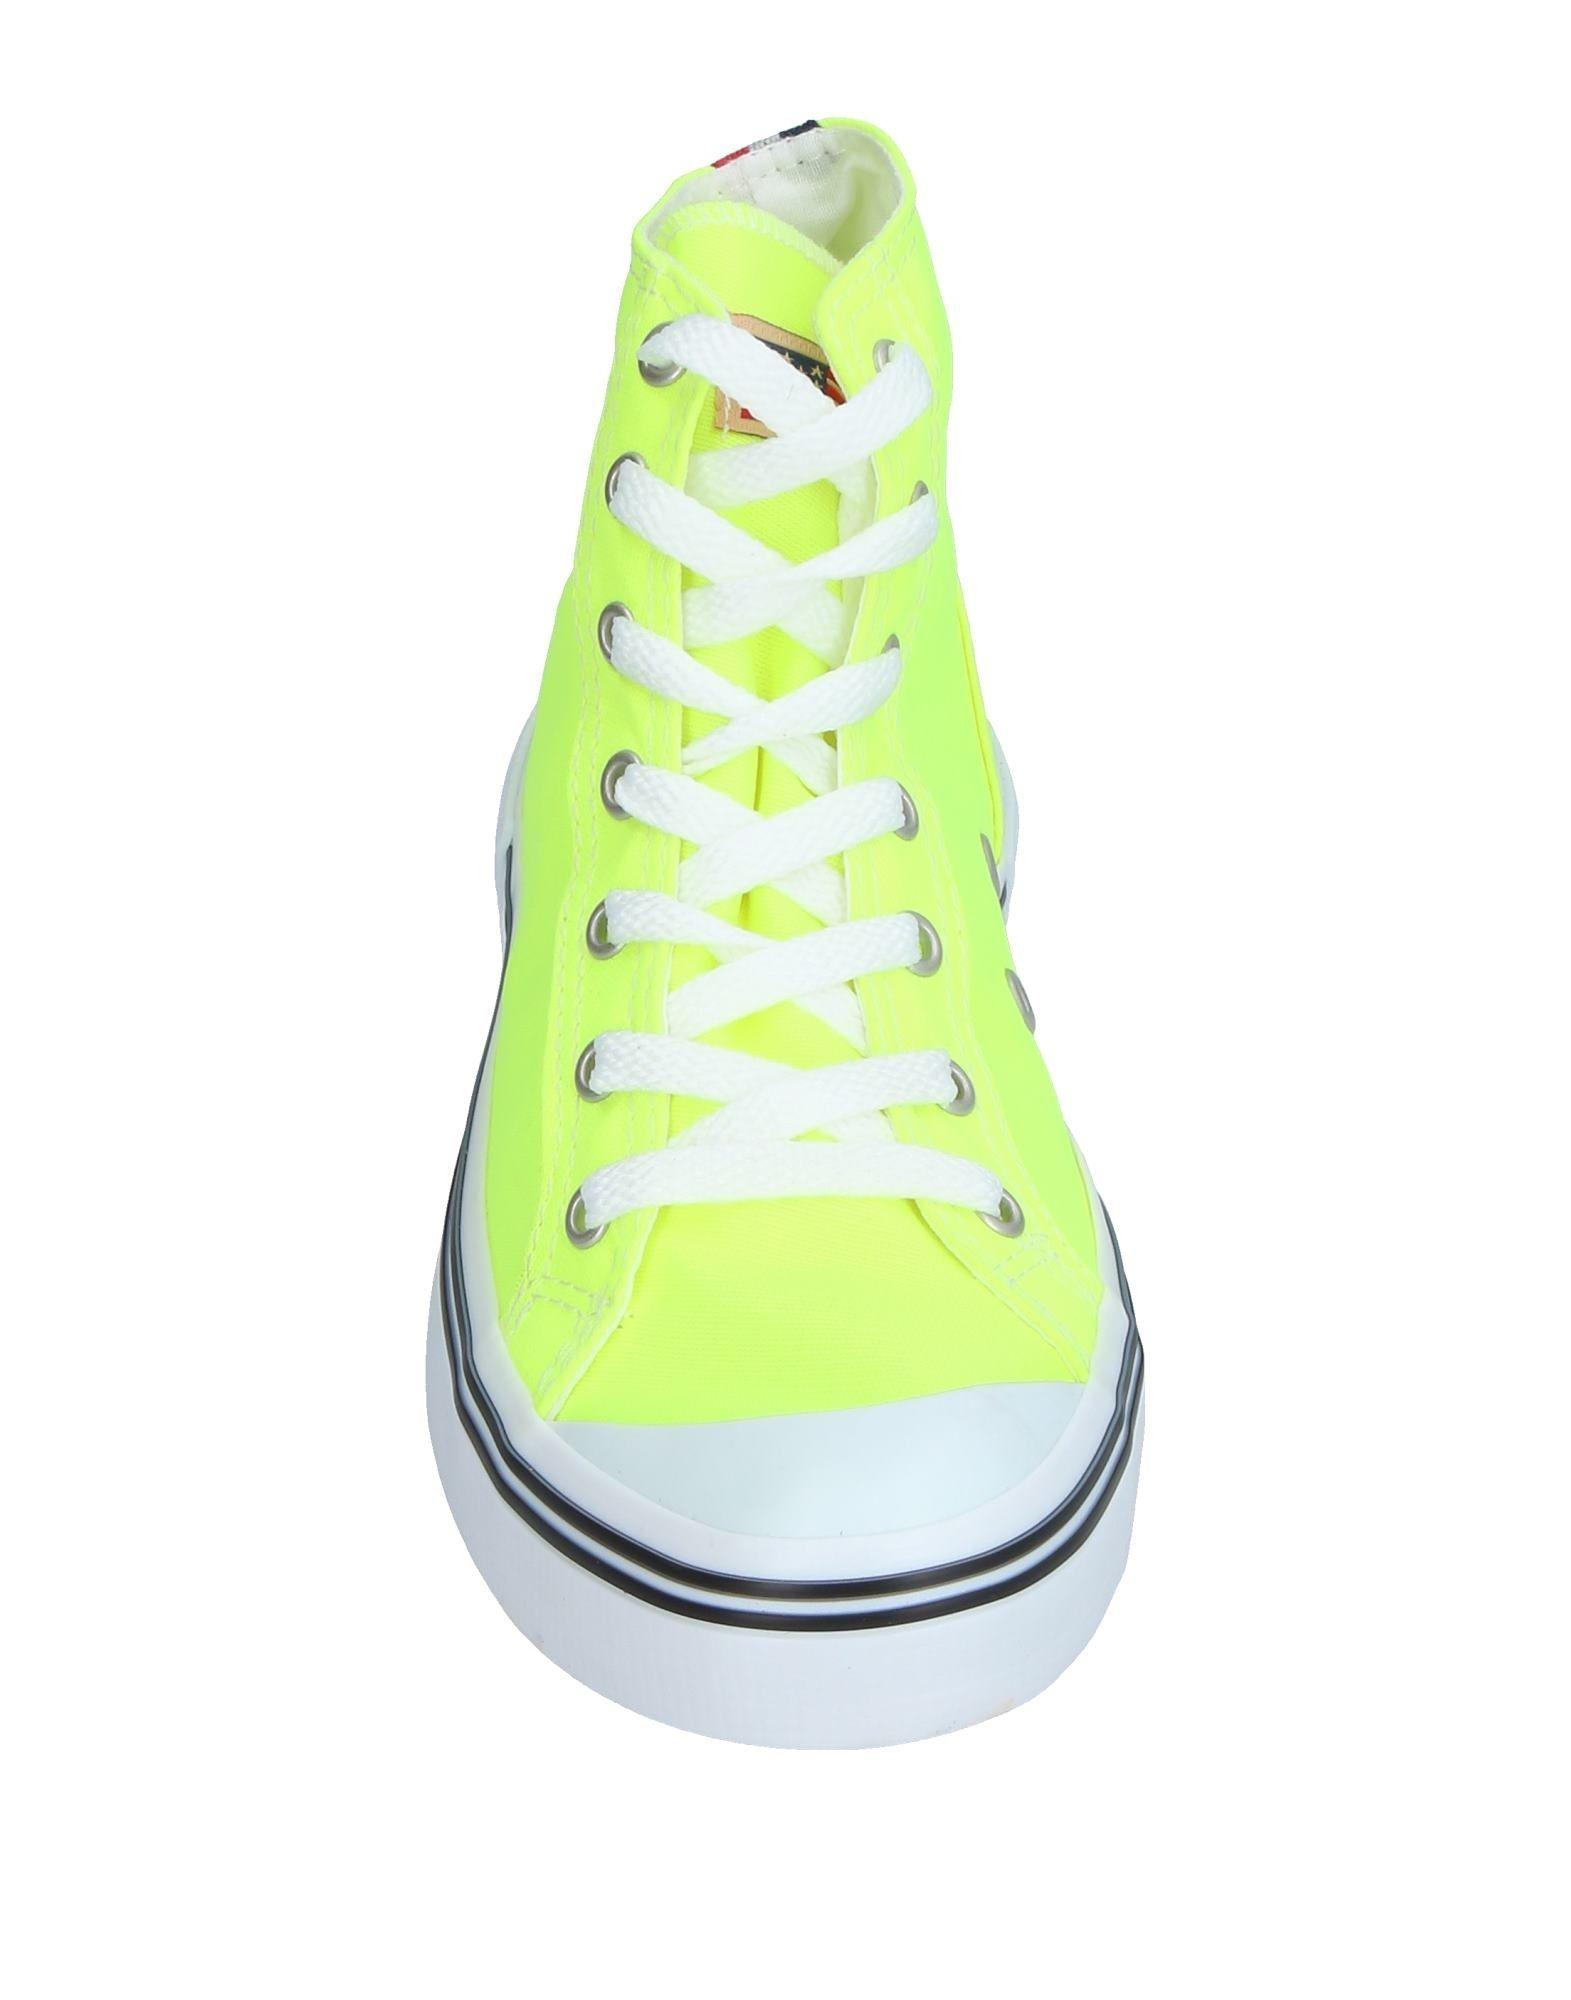 U.S. POLO ASSN. Rubber High-tops & Sneakers in Yellow